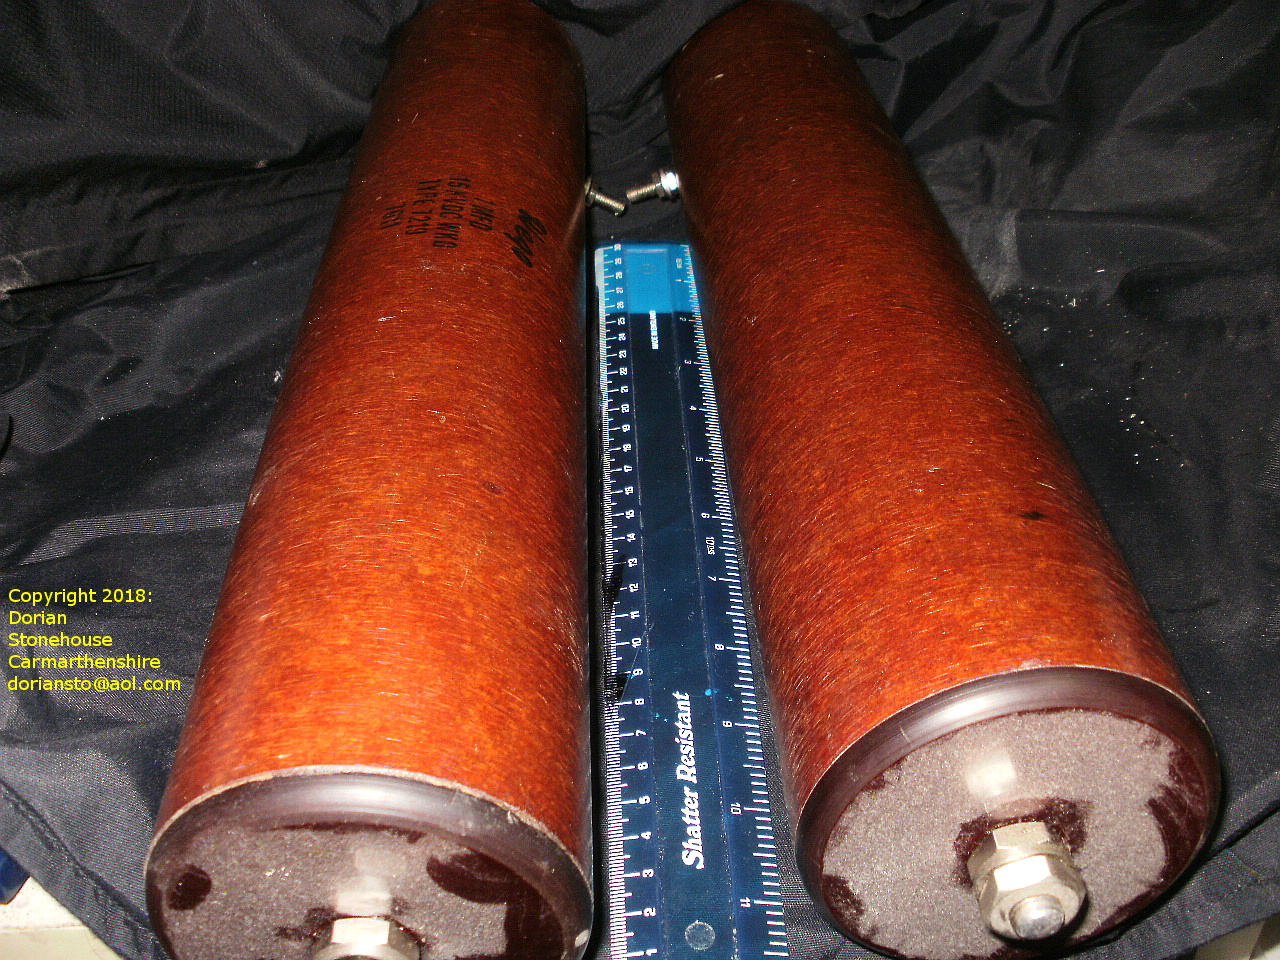 Huge capacitors - over a foot long - end-on view